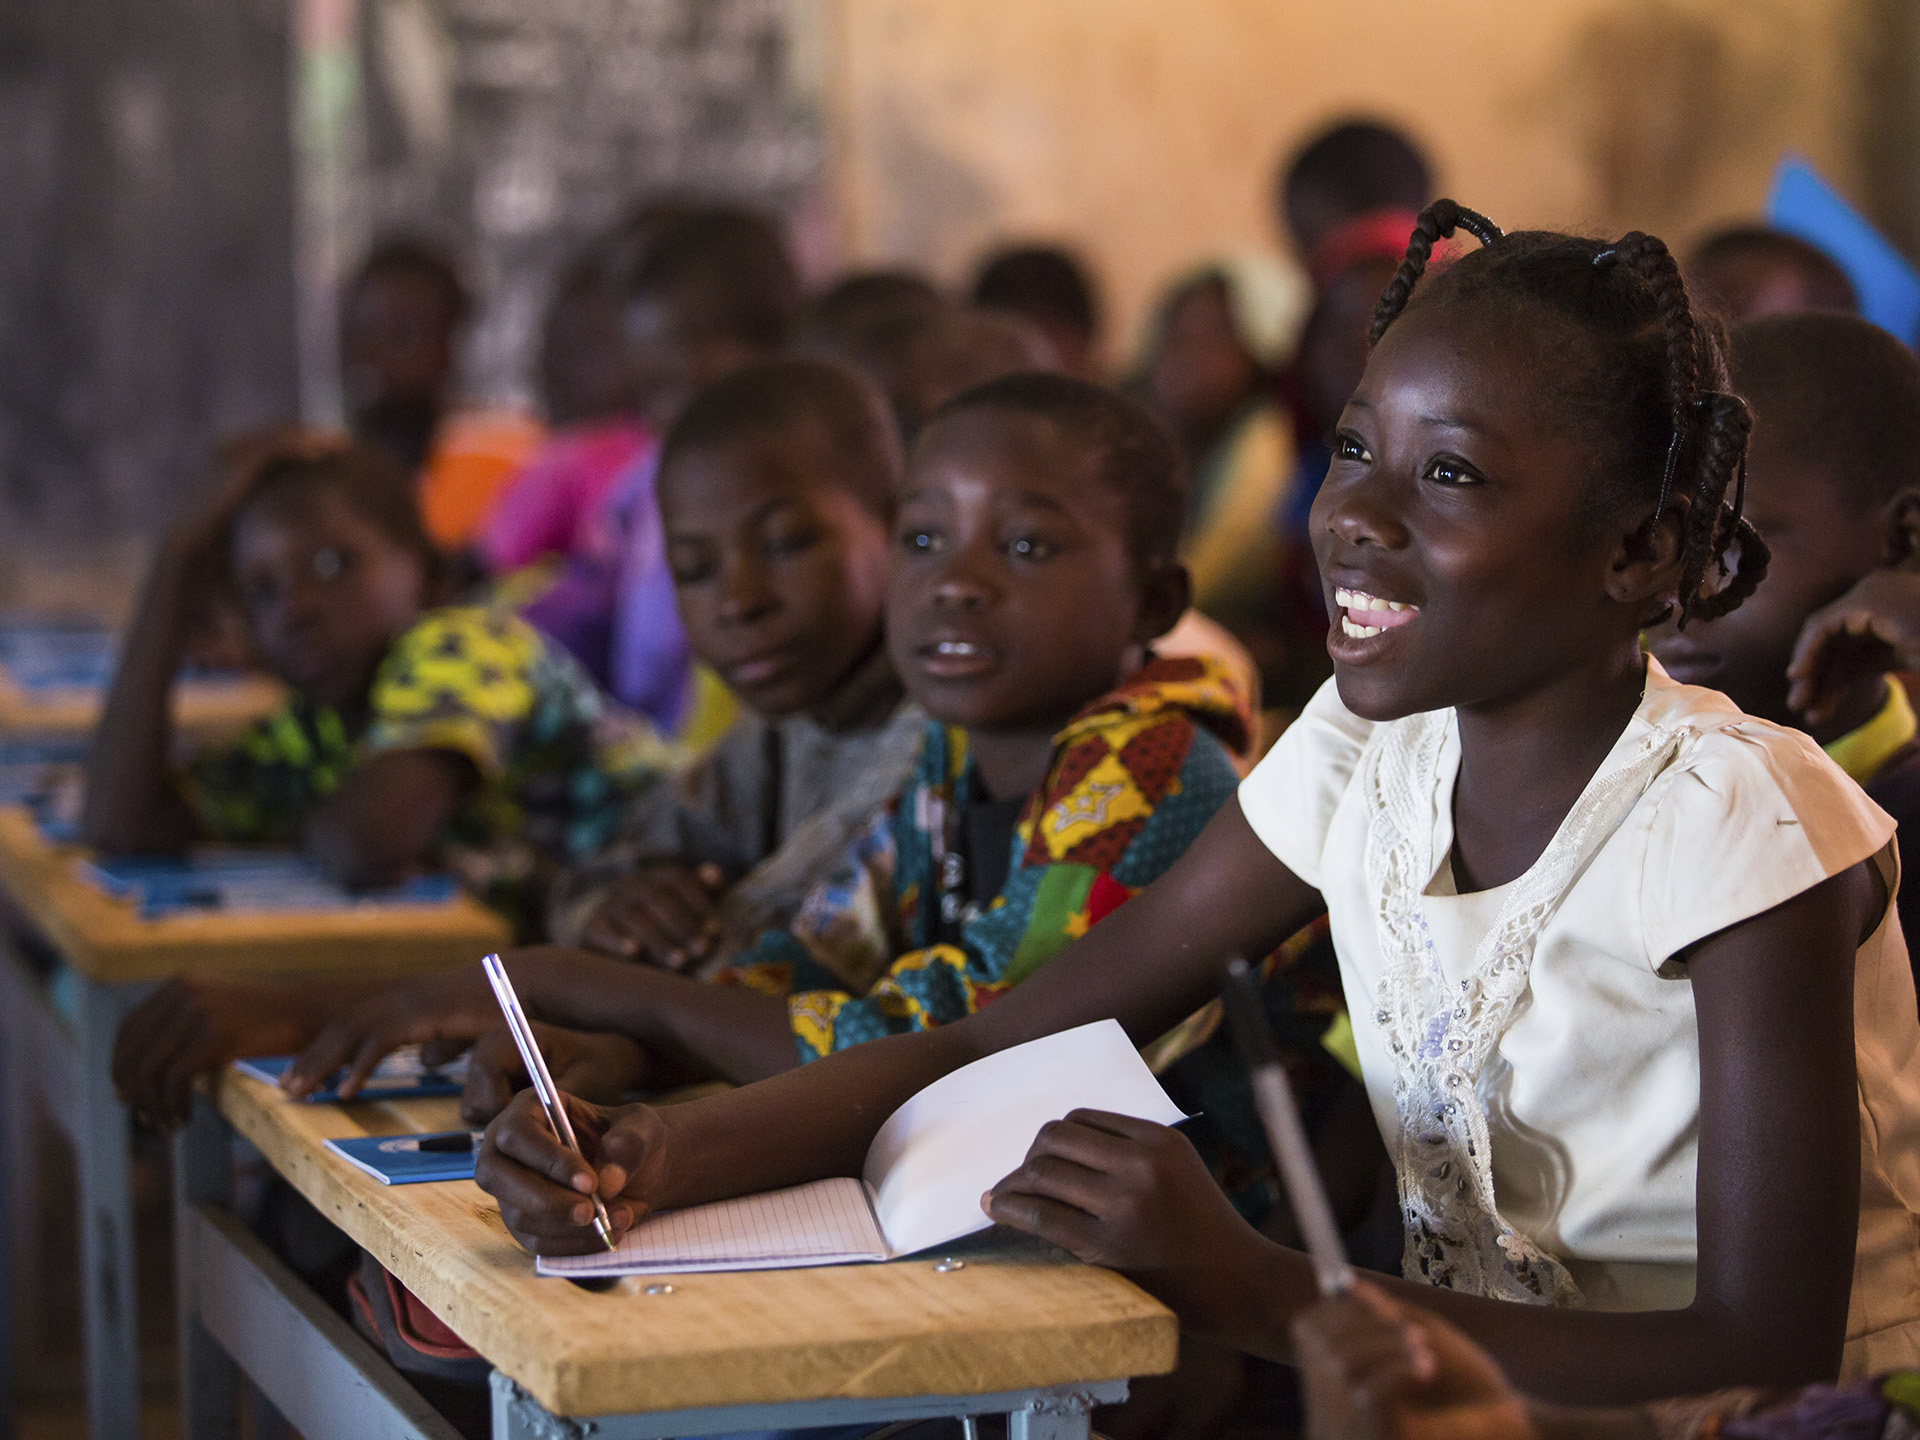 We need gender equality in education to drive gender equality in society